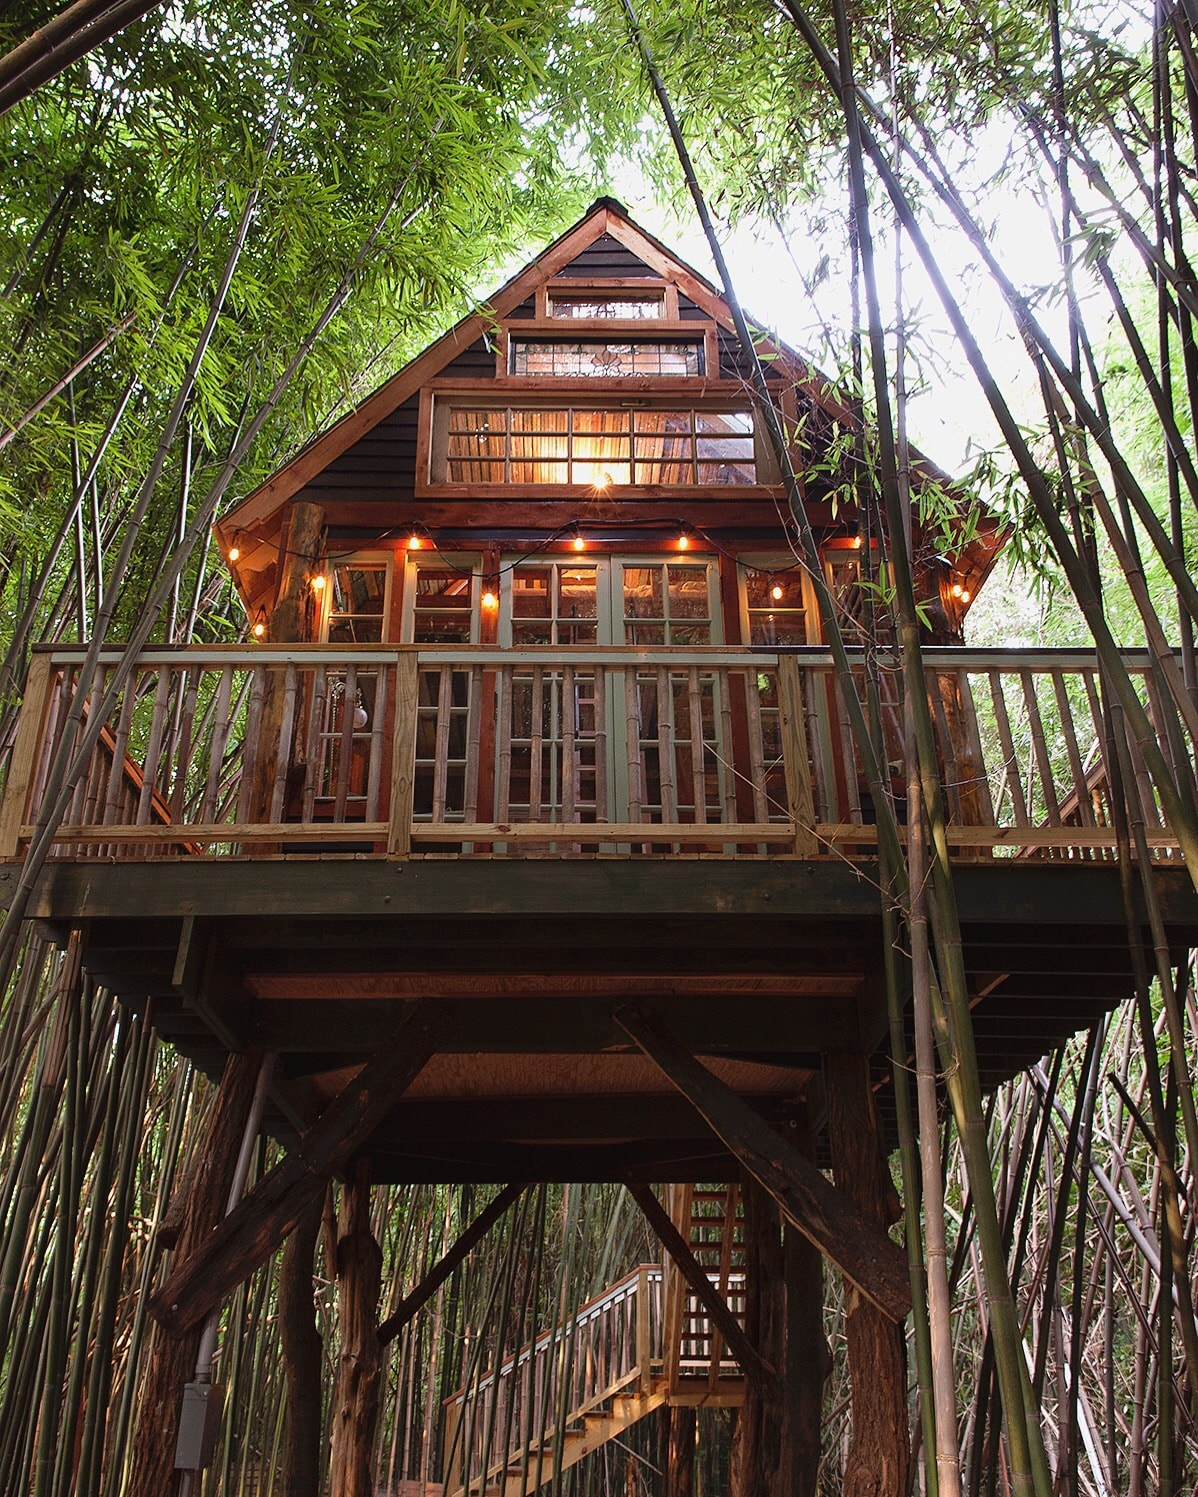 treehouse masters irish cottage atlanta alpaca treehouse in the bamboo forest treehouses for rent georgia - Treehouse Masters Irish Cottage